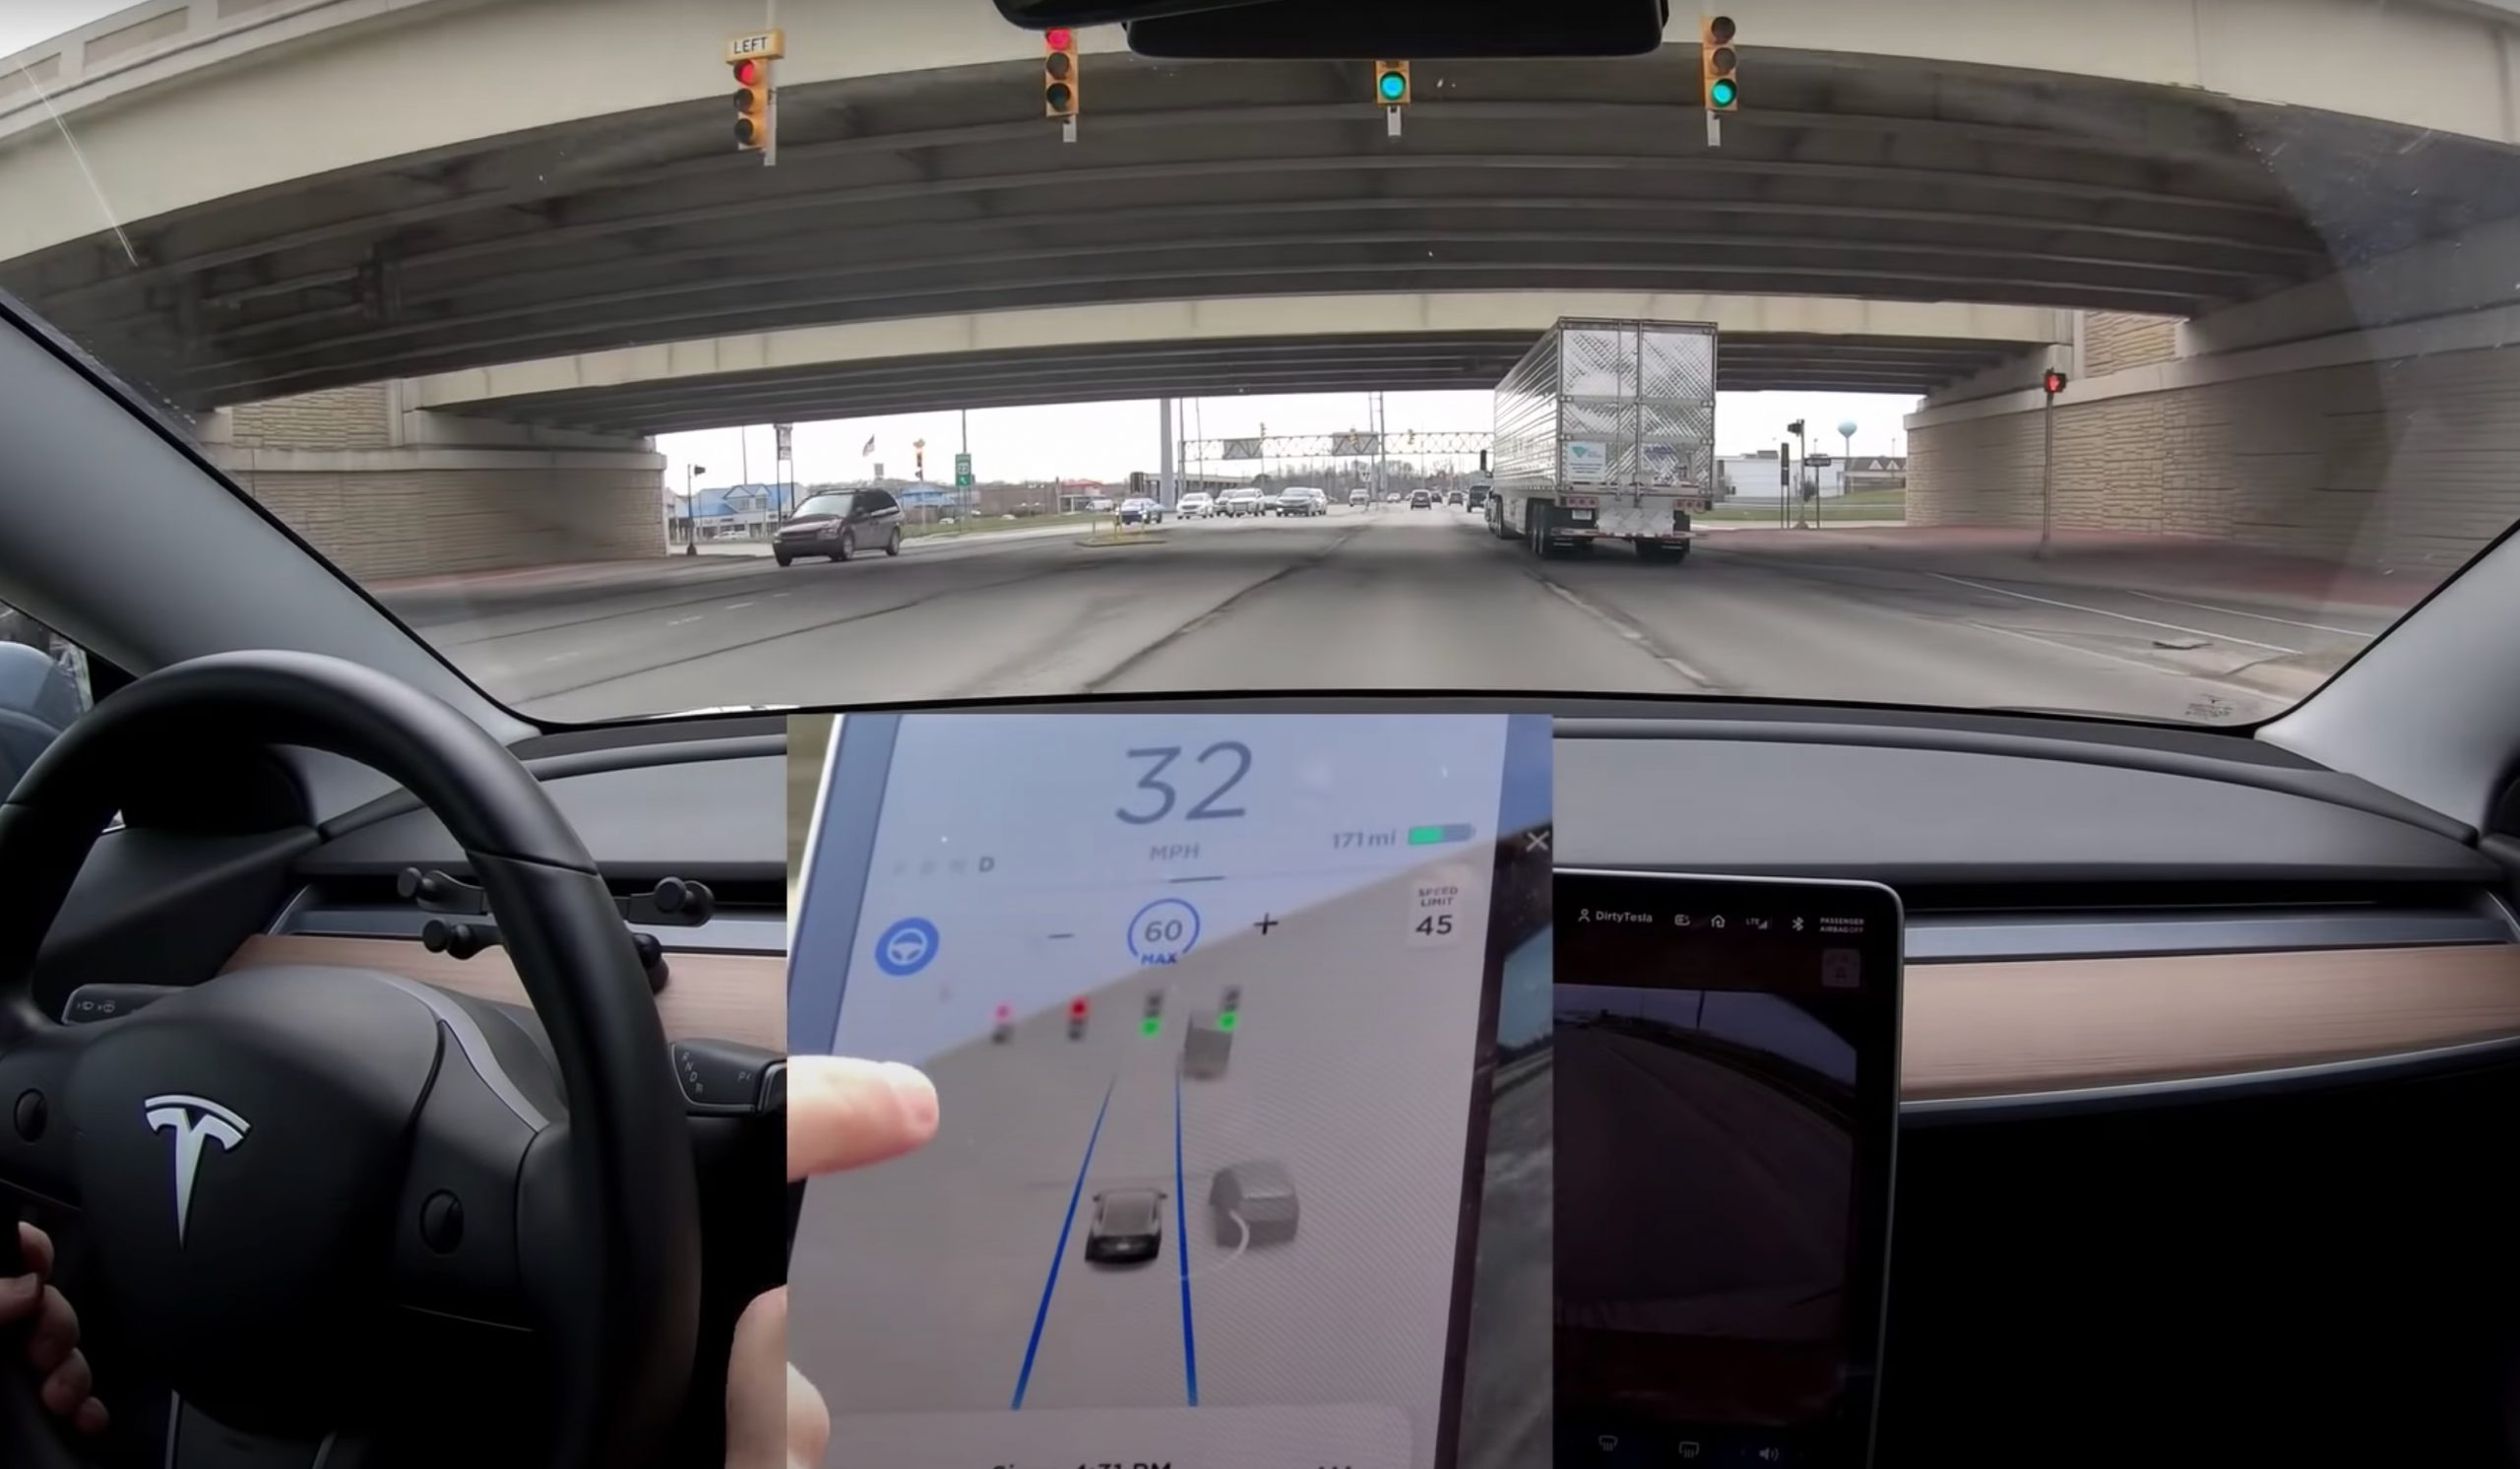 Tesla cars can now recognise and respond to traffic lights, stop signs